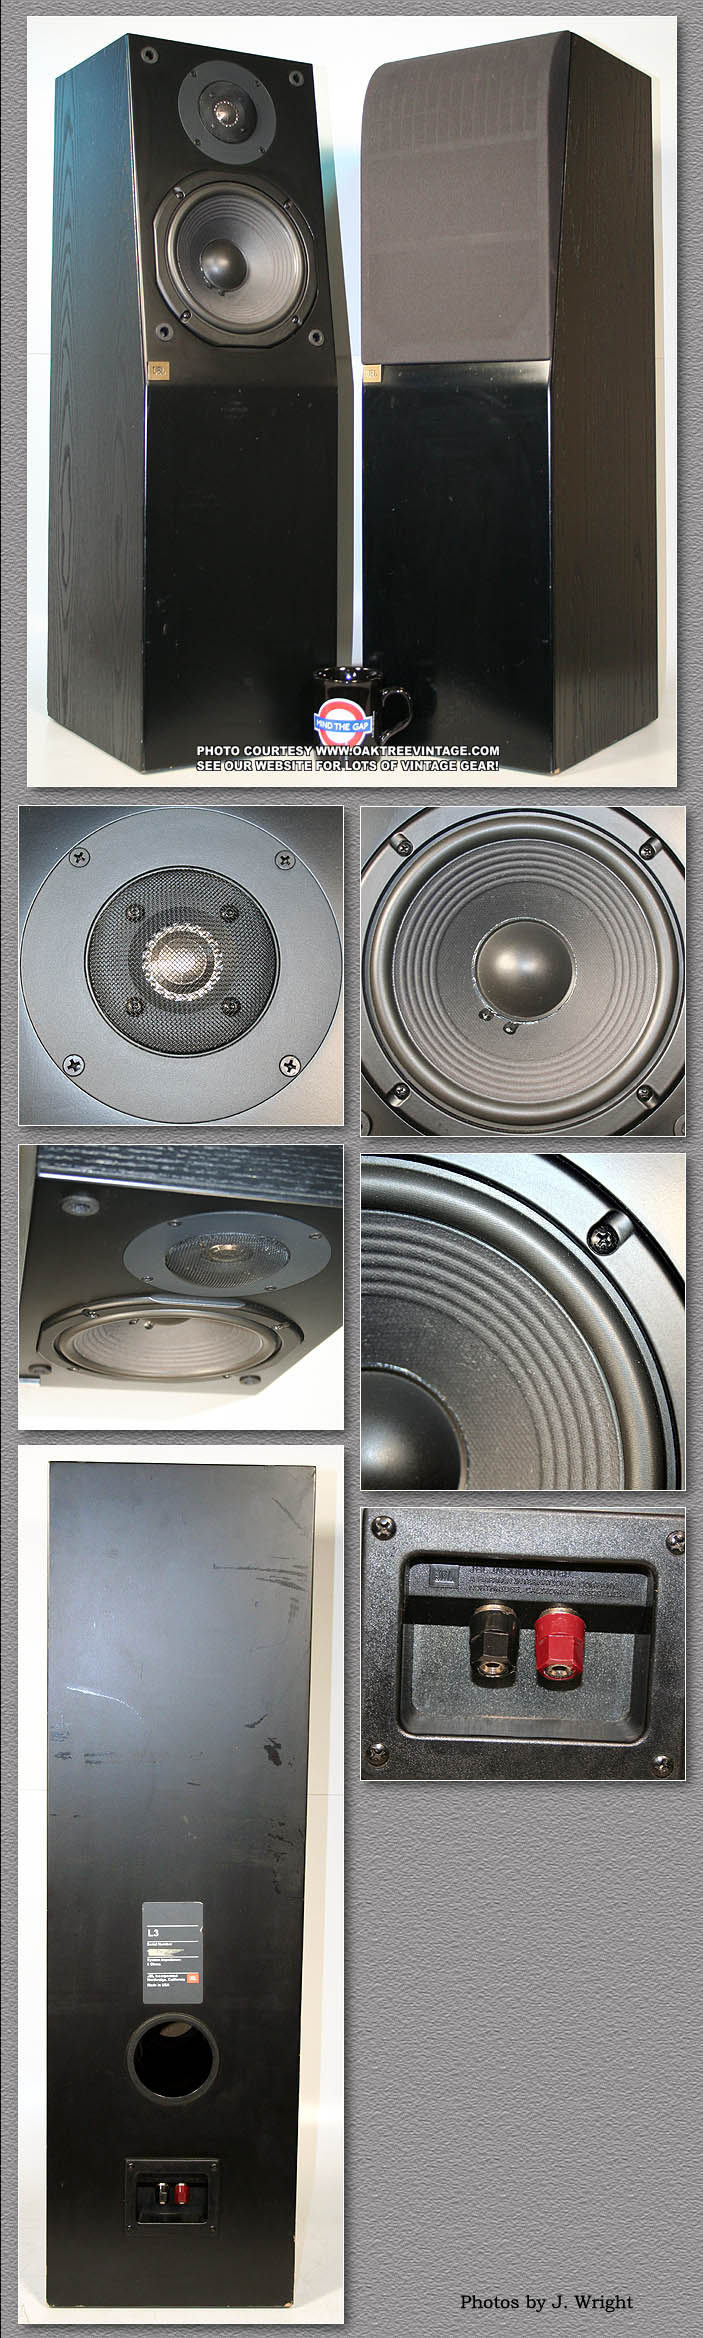 JBL Replacement Speakers drivers & Parts  Used & Vintage